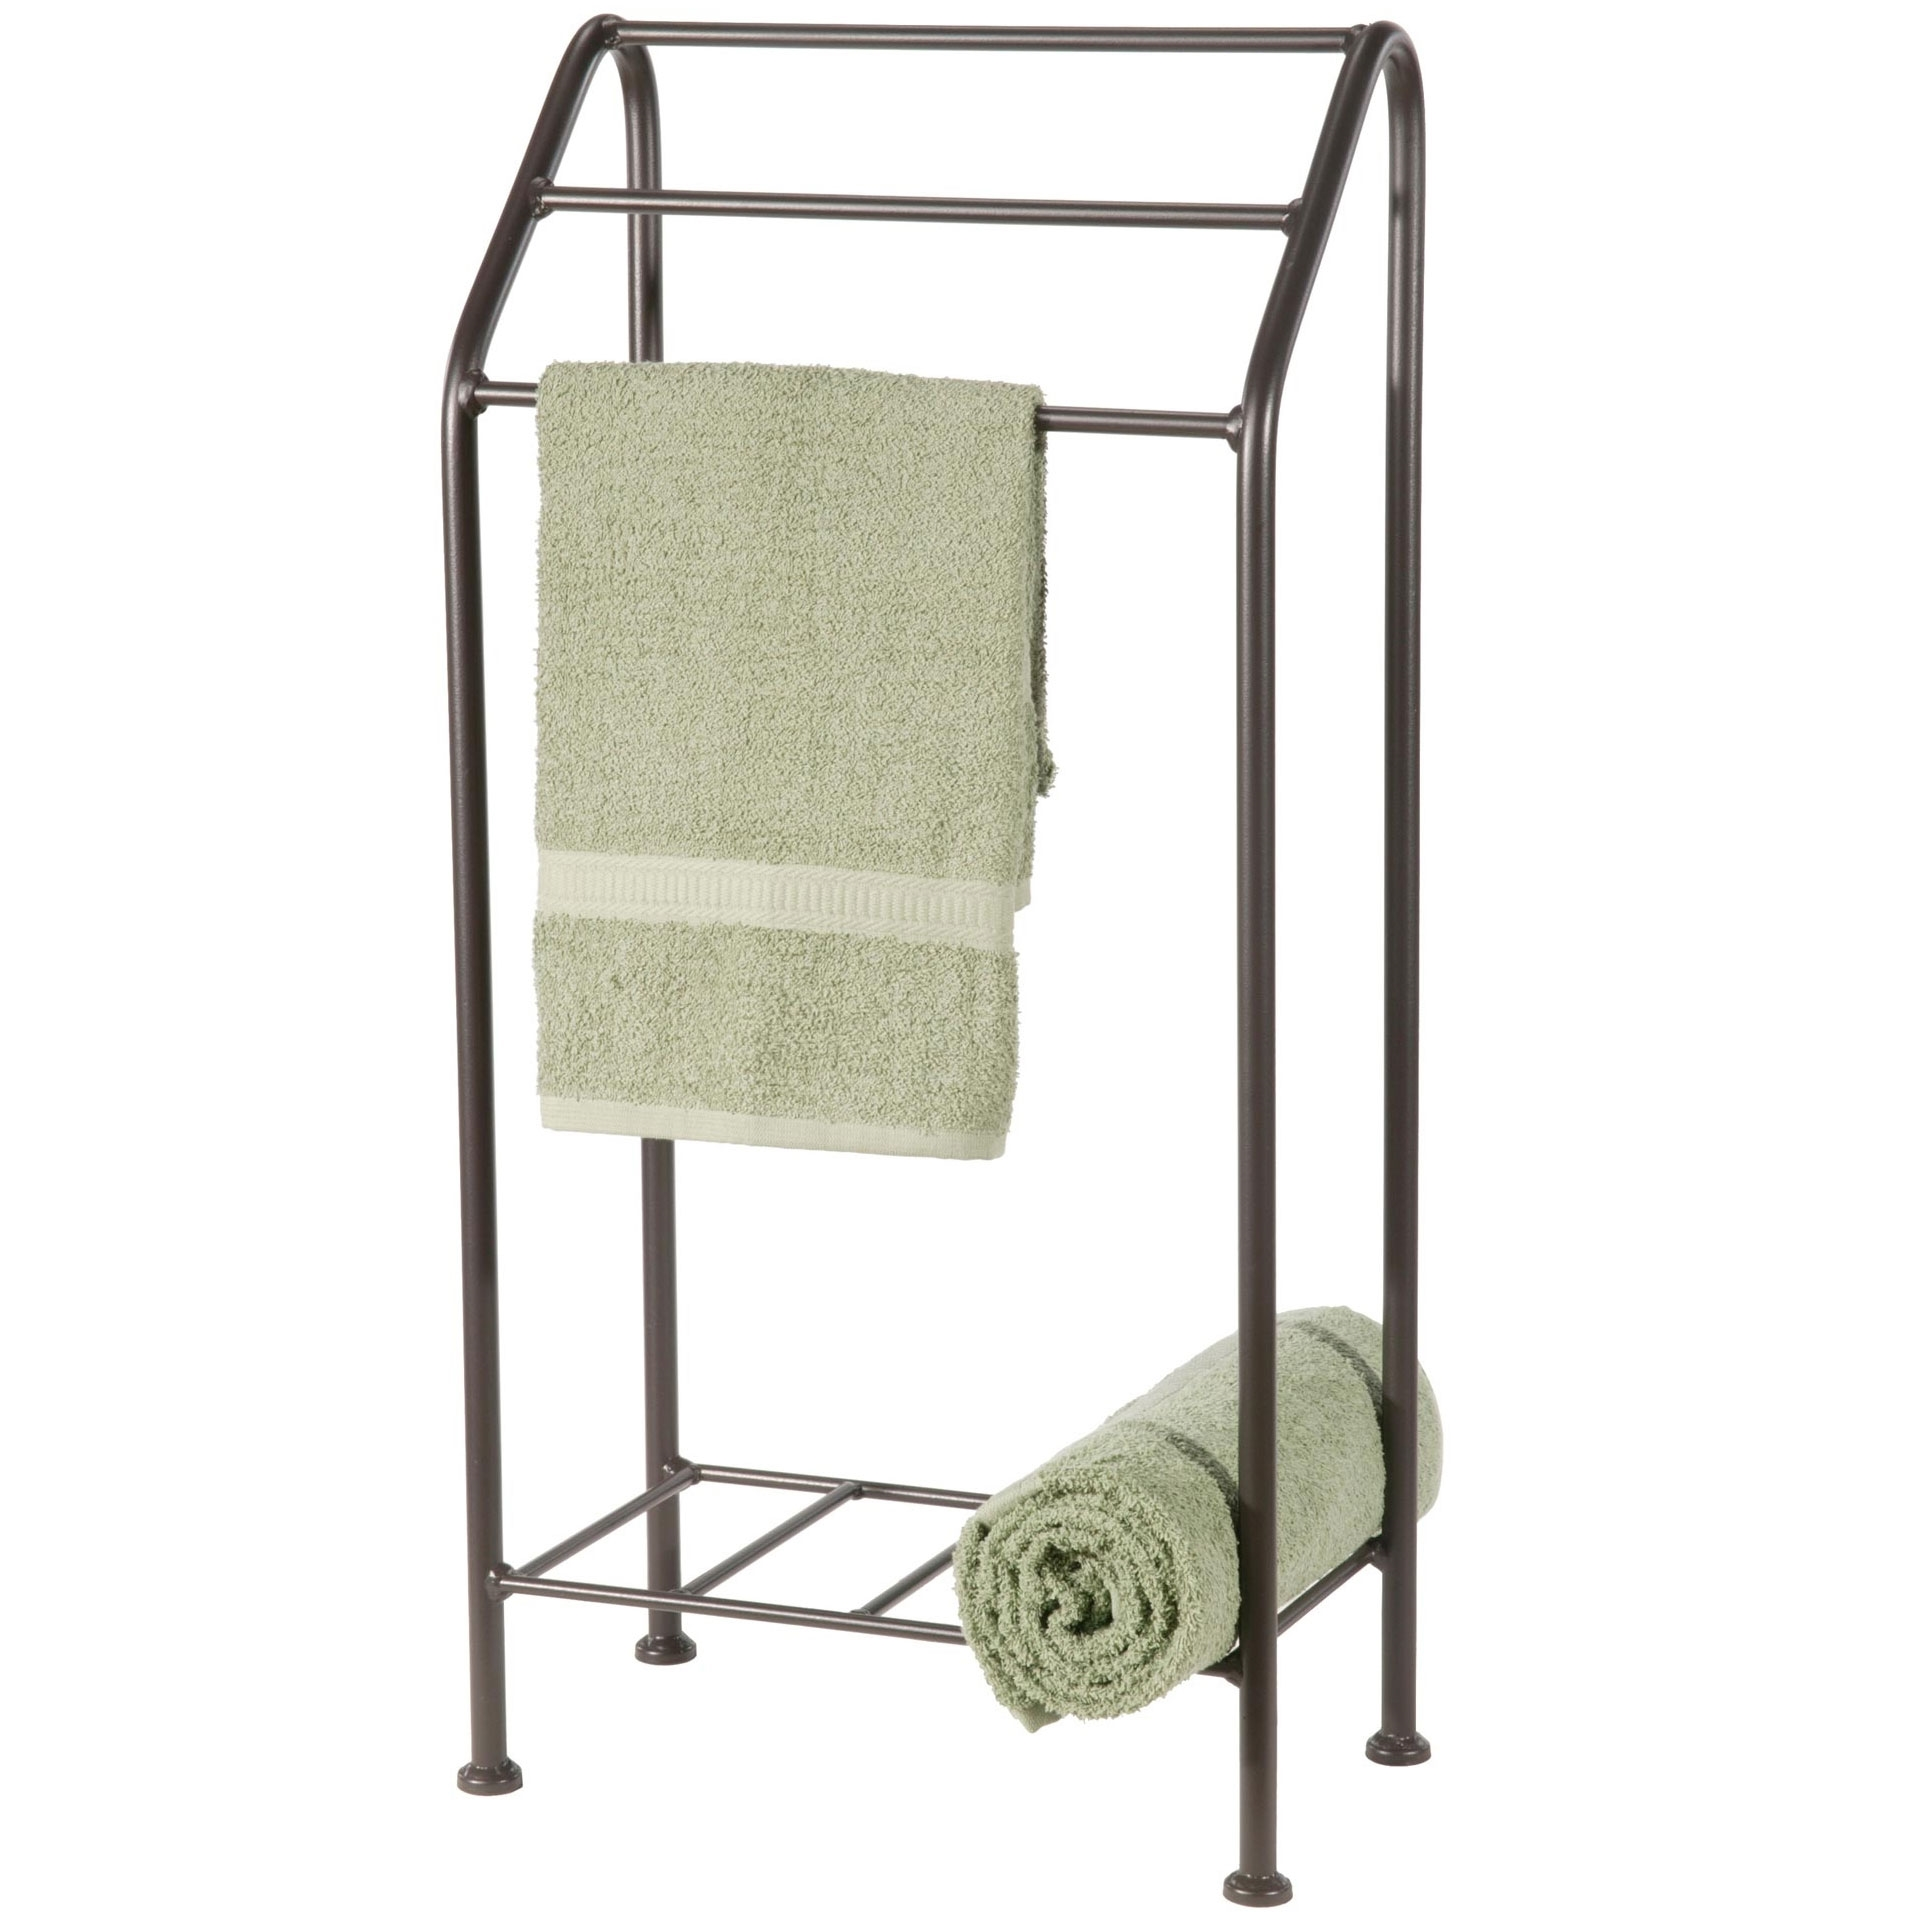 Wrought iron monticello towel rack by stone county ironworks for Bathroom towel racks